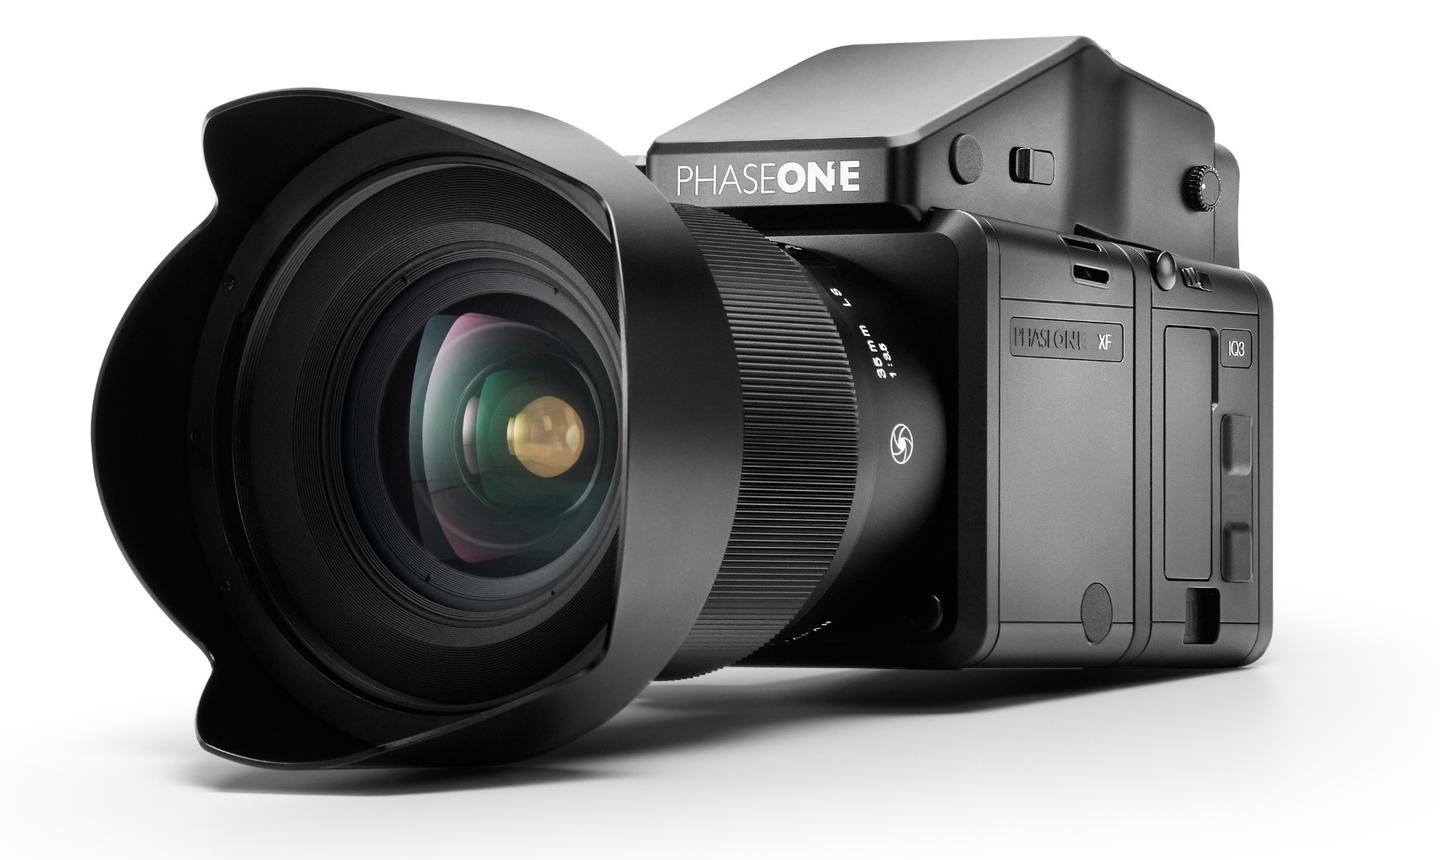 The Phase One XF features a new autofocus platform, an upgradable OS, and resolutions up to 80-megapixels